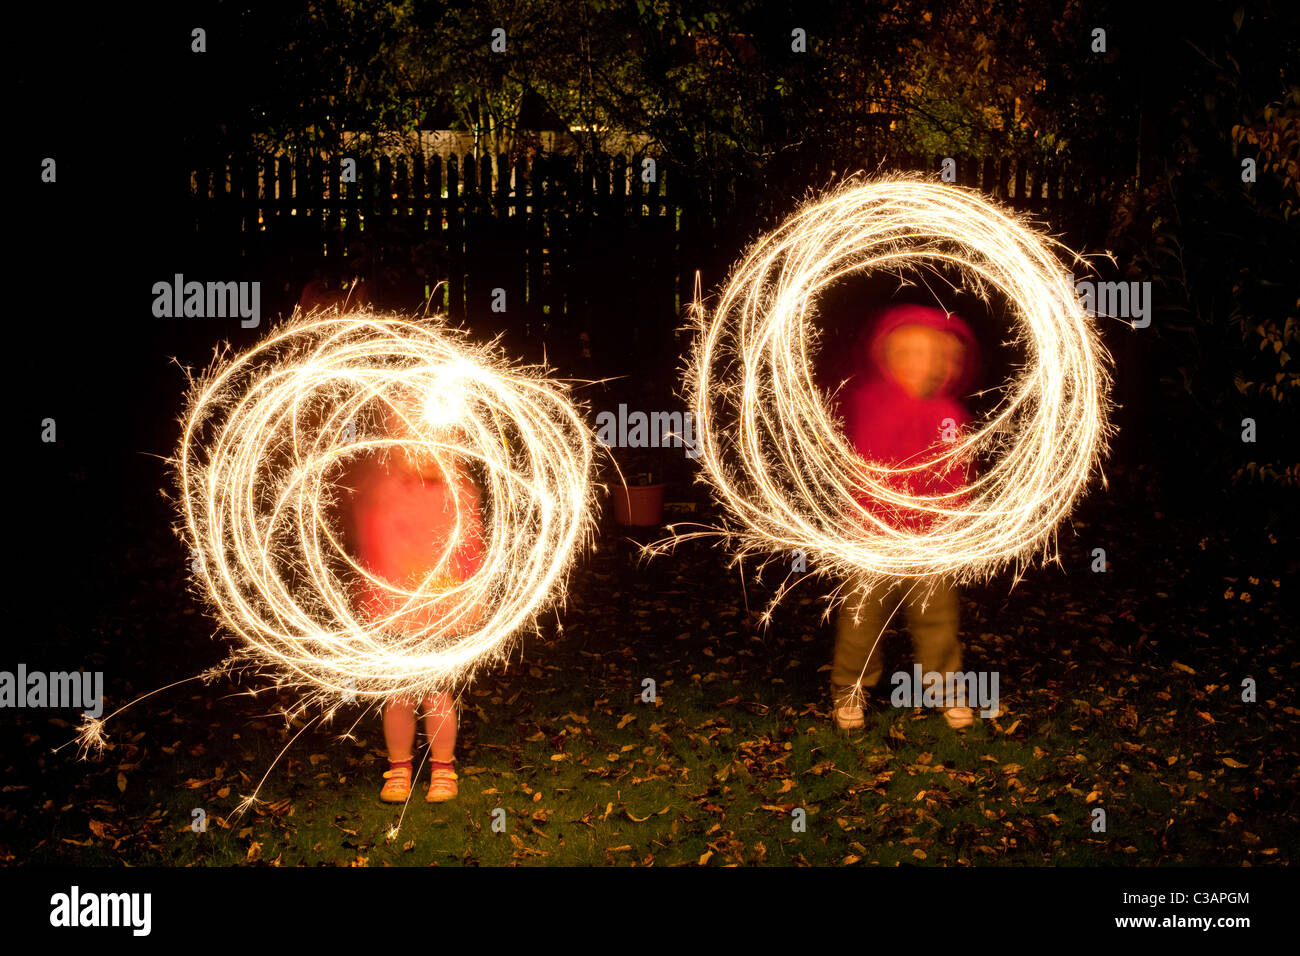 Children with sparklers in a garden - Stock Image